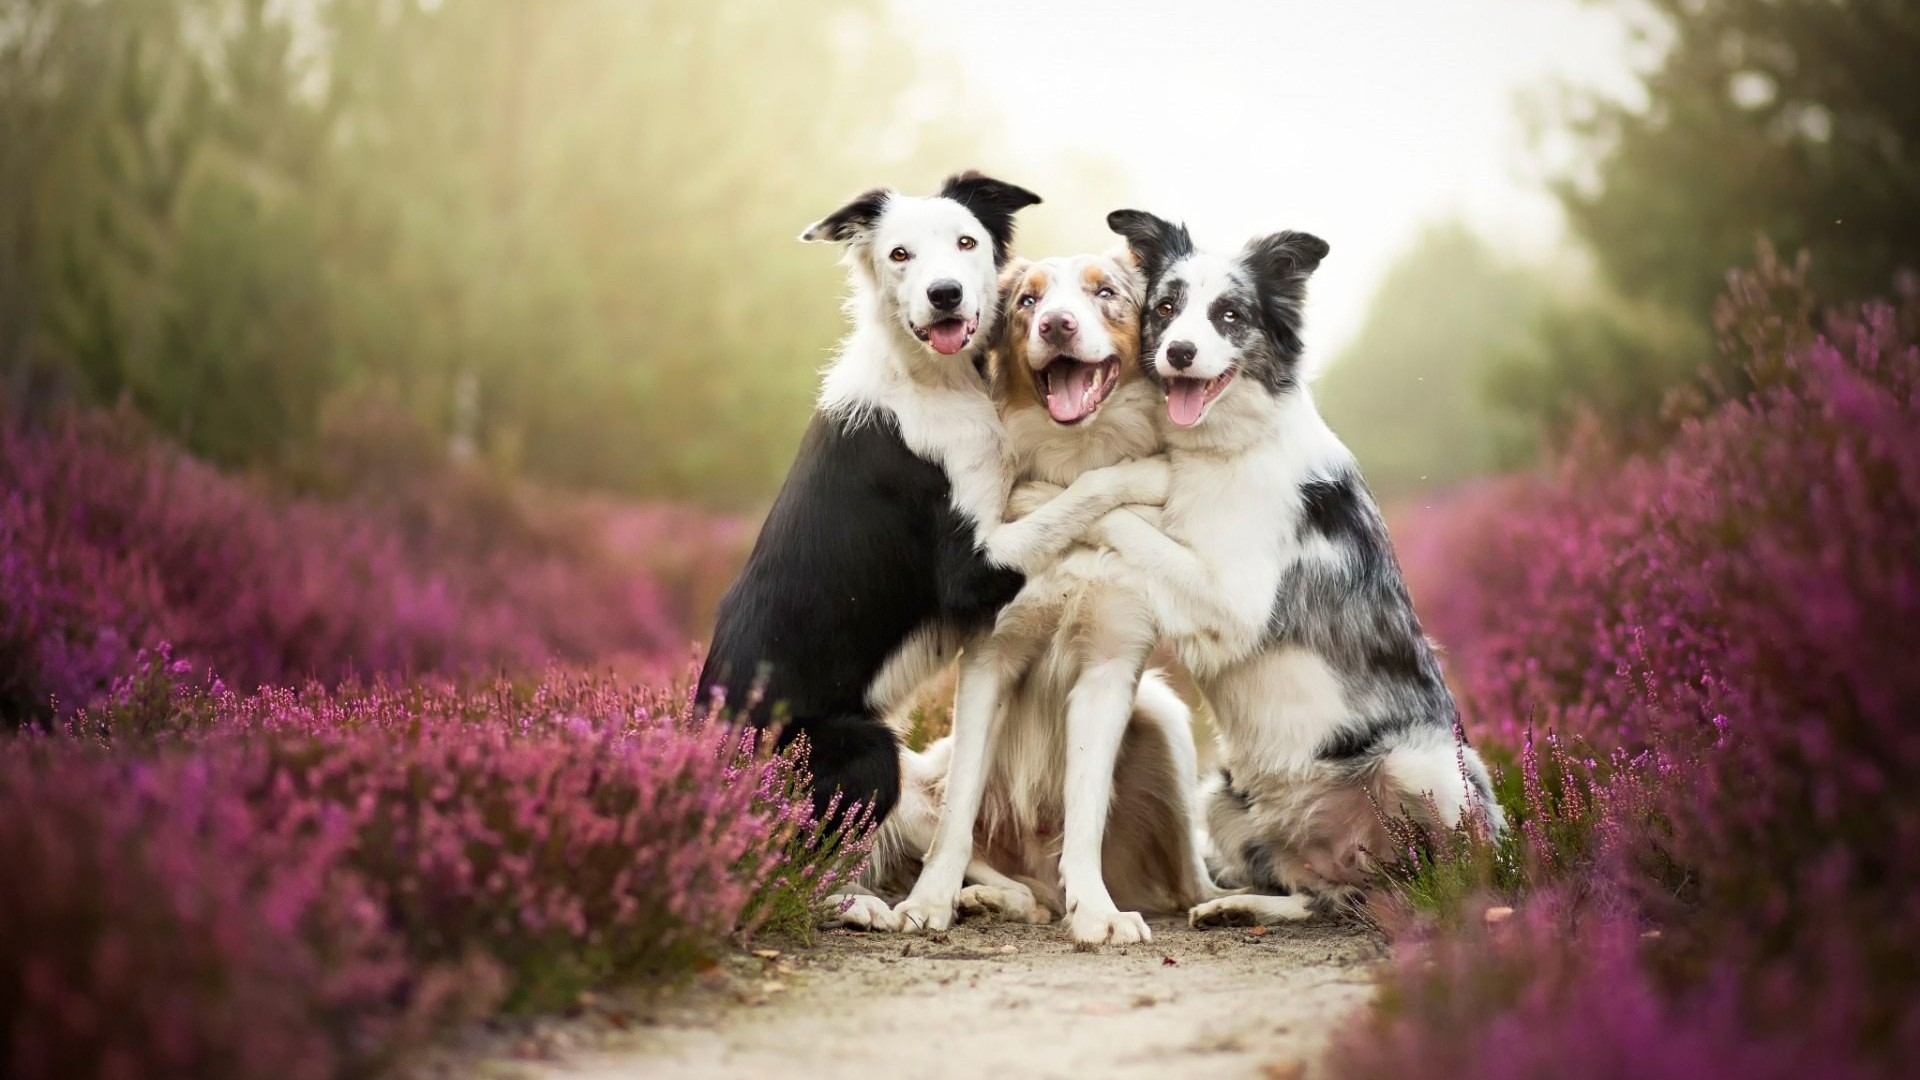 Dogs-Friendship-1920-x-1080-Need-iPhone-S-Plus-Background-for-IPhoneSPlus-Foll-wallpaper-wpc5804205